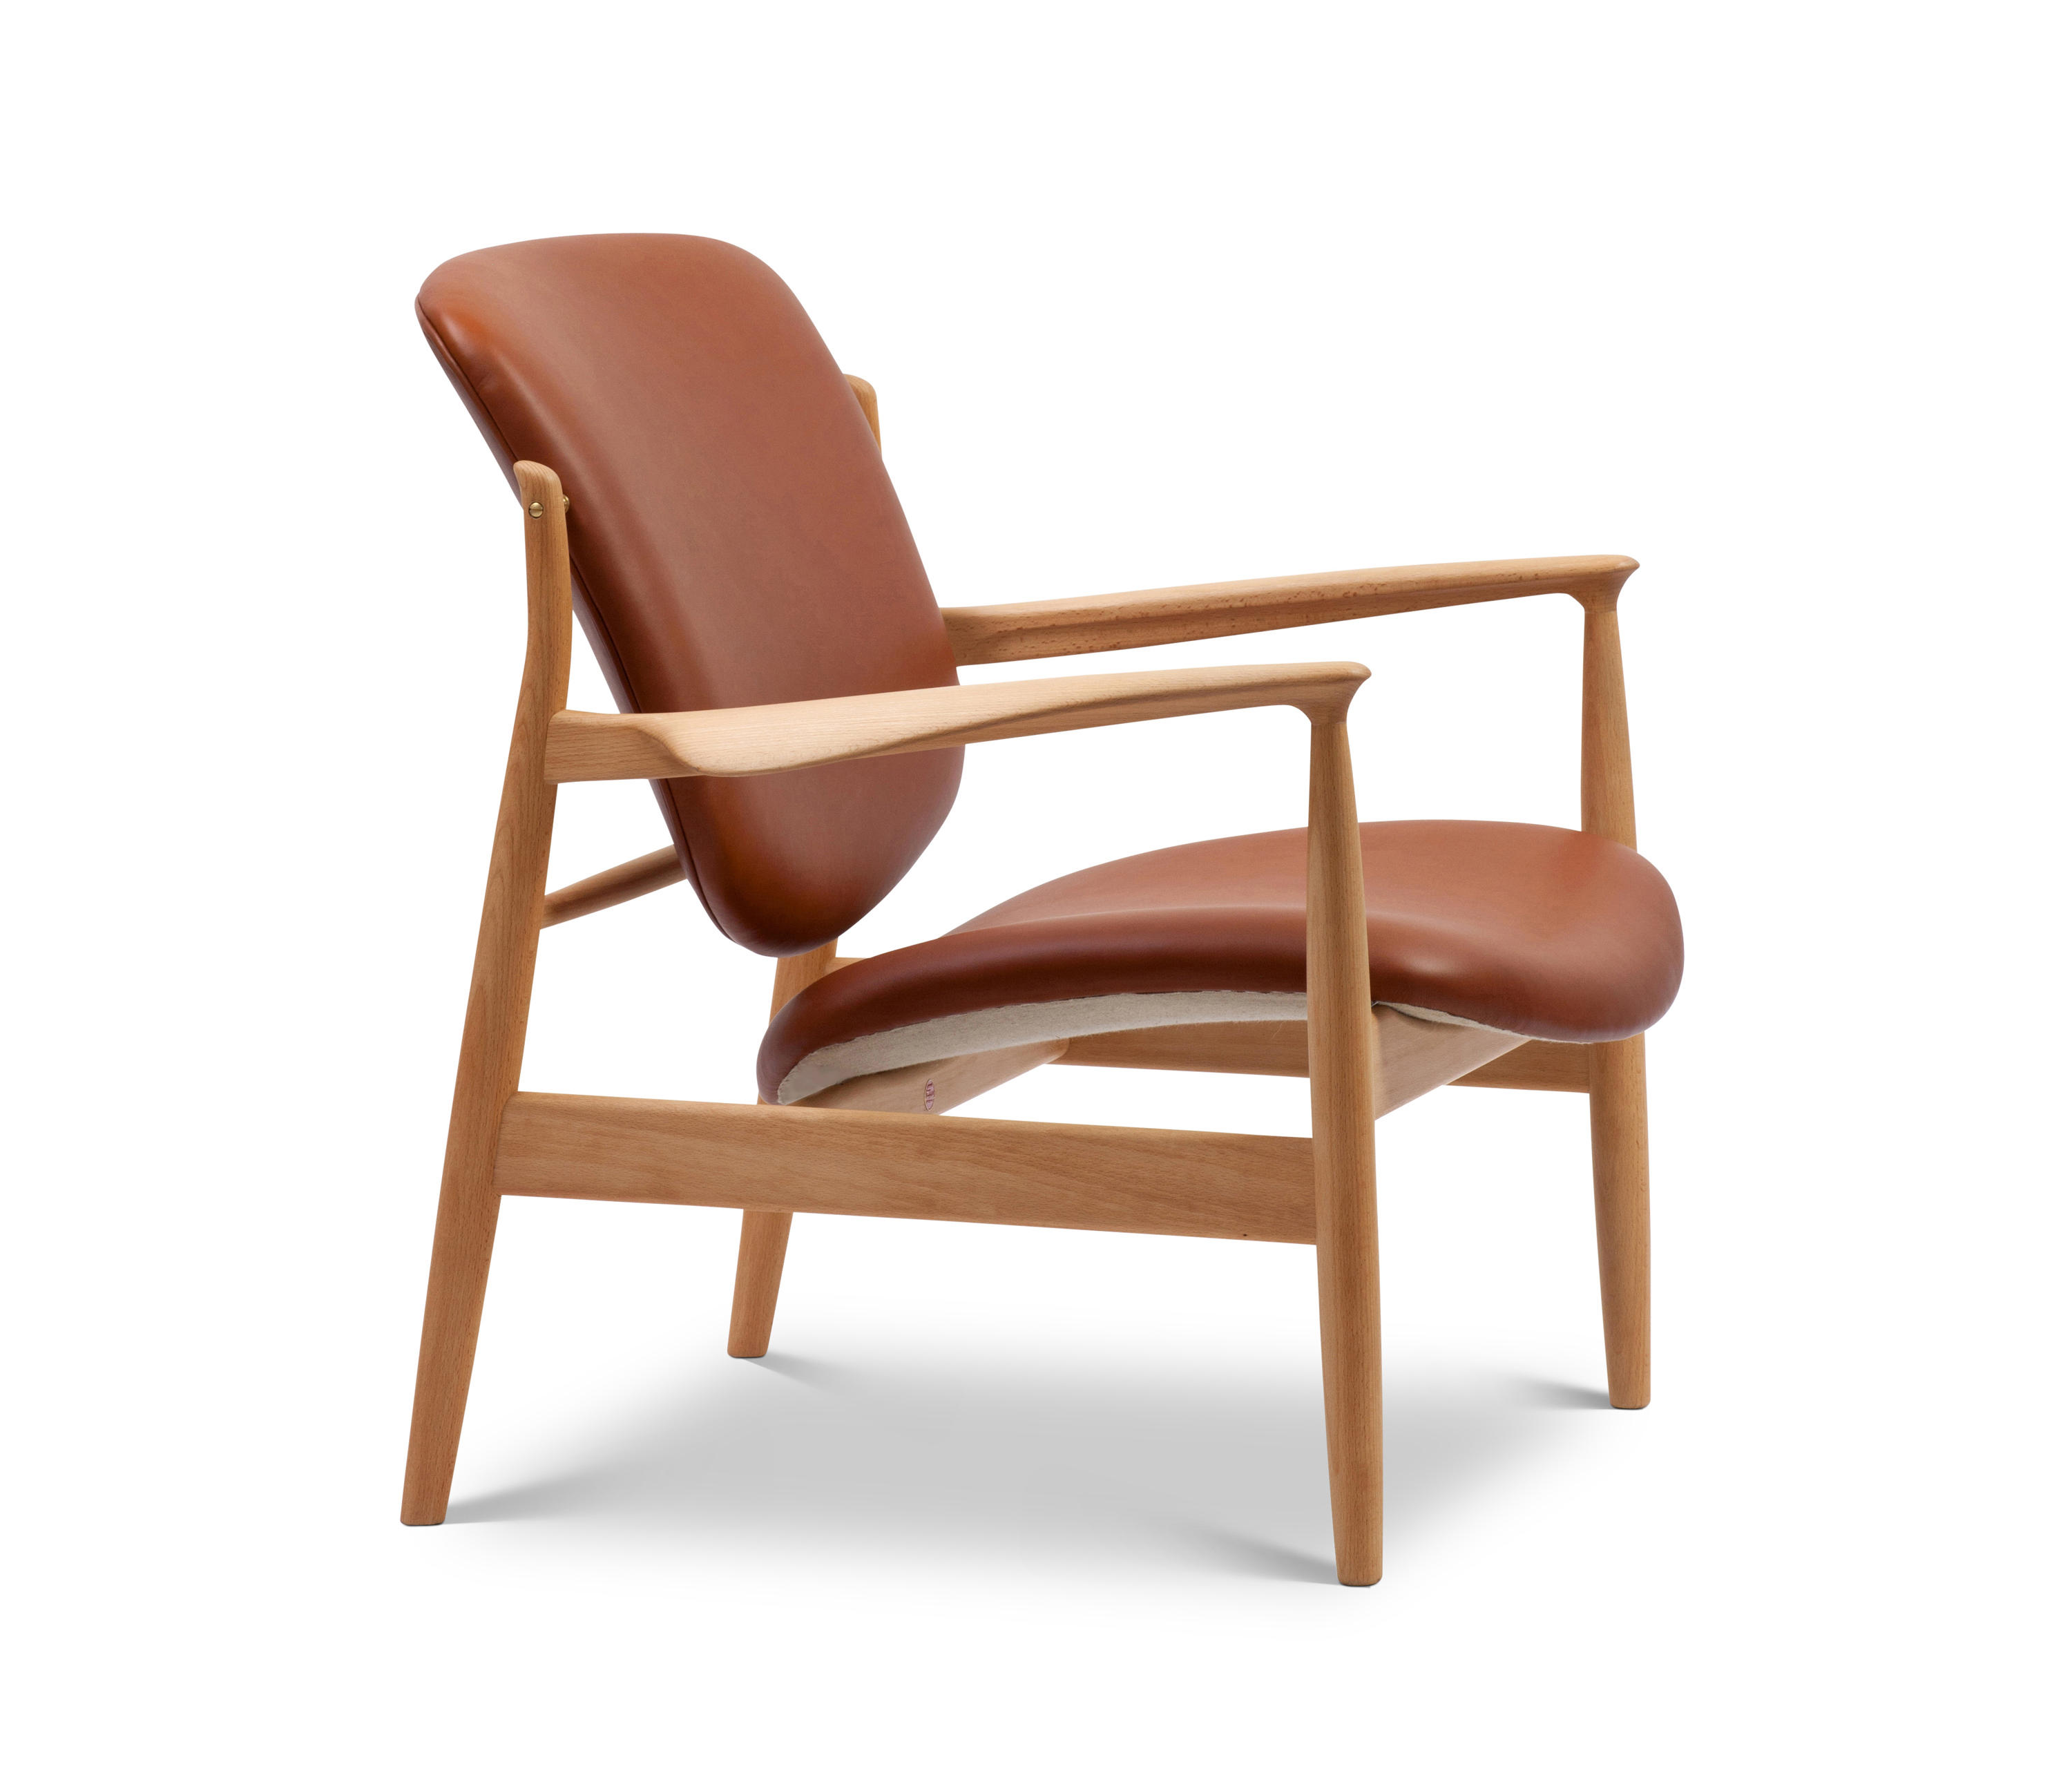 France Chair by House of Finn Juhl - Onecollection | Armchairs  sc 1 st  Architonic & FRANCE CHAIR - Armchairs from House of Finn Juhl - Onecollection ...